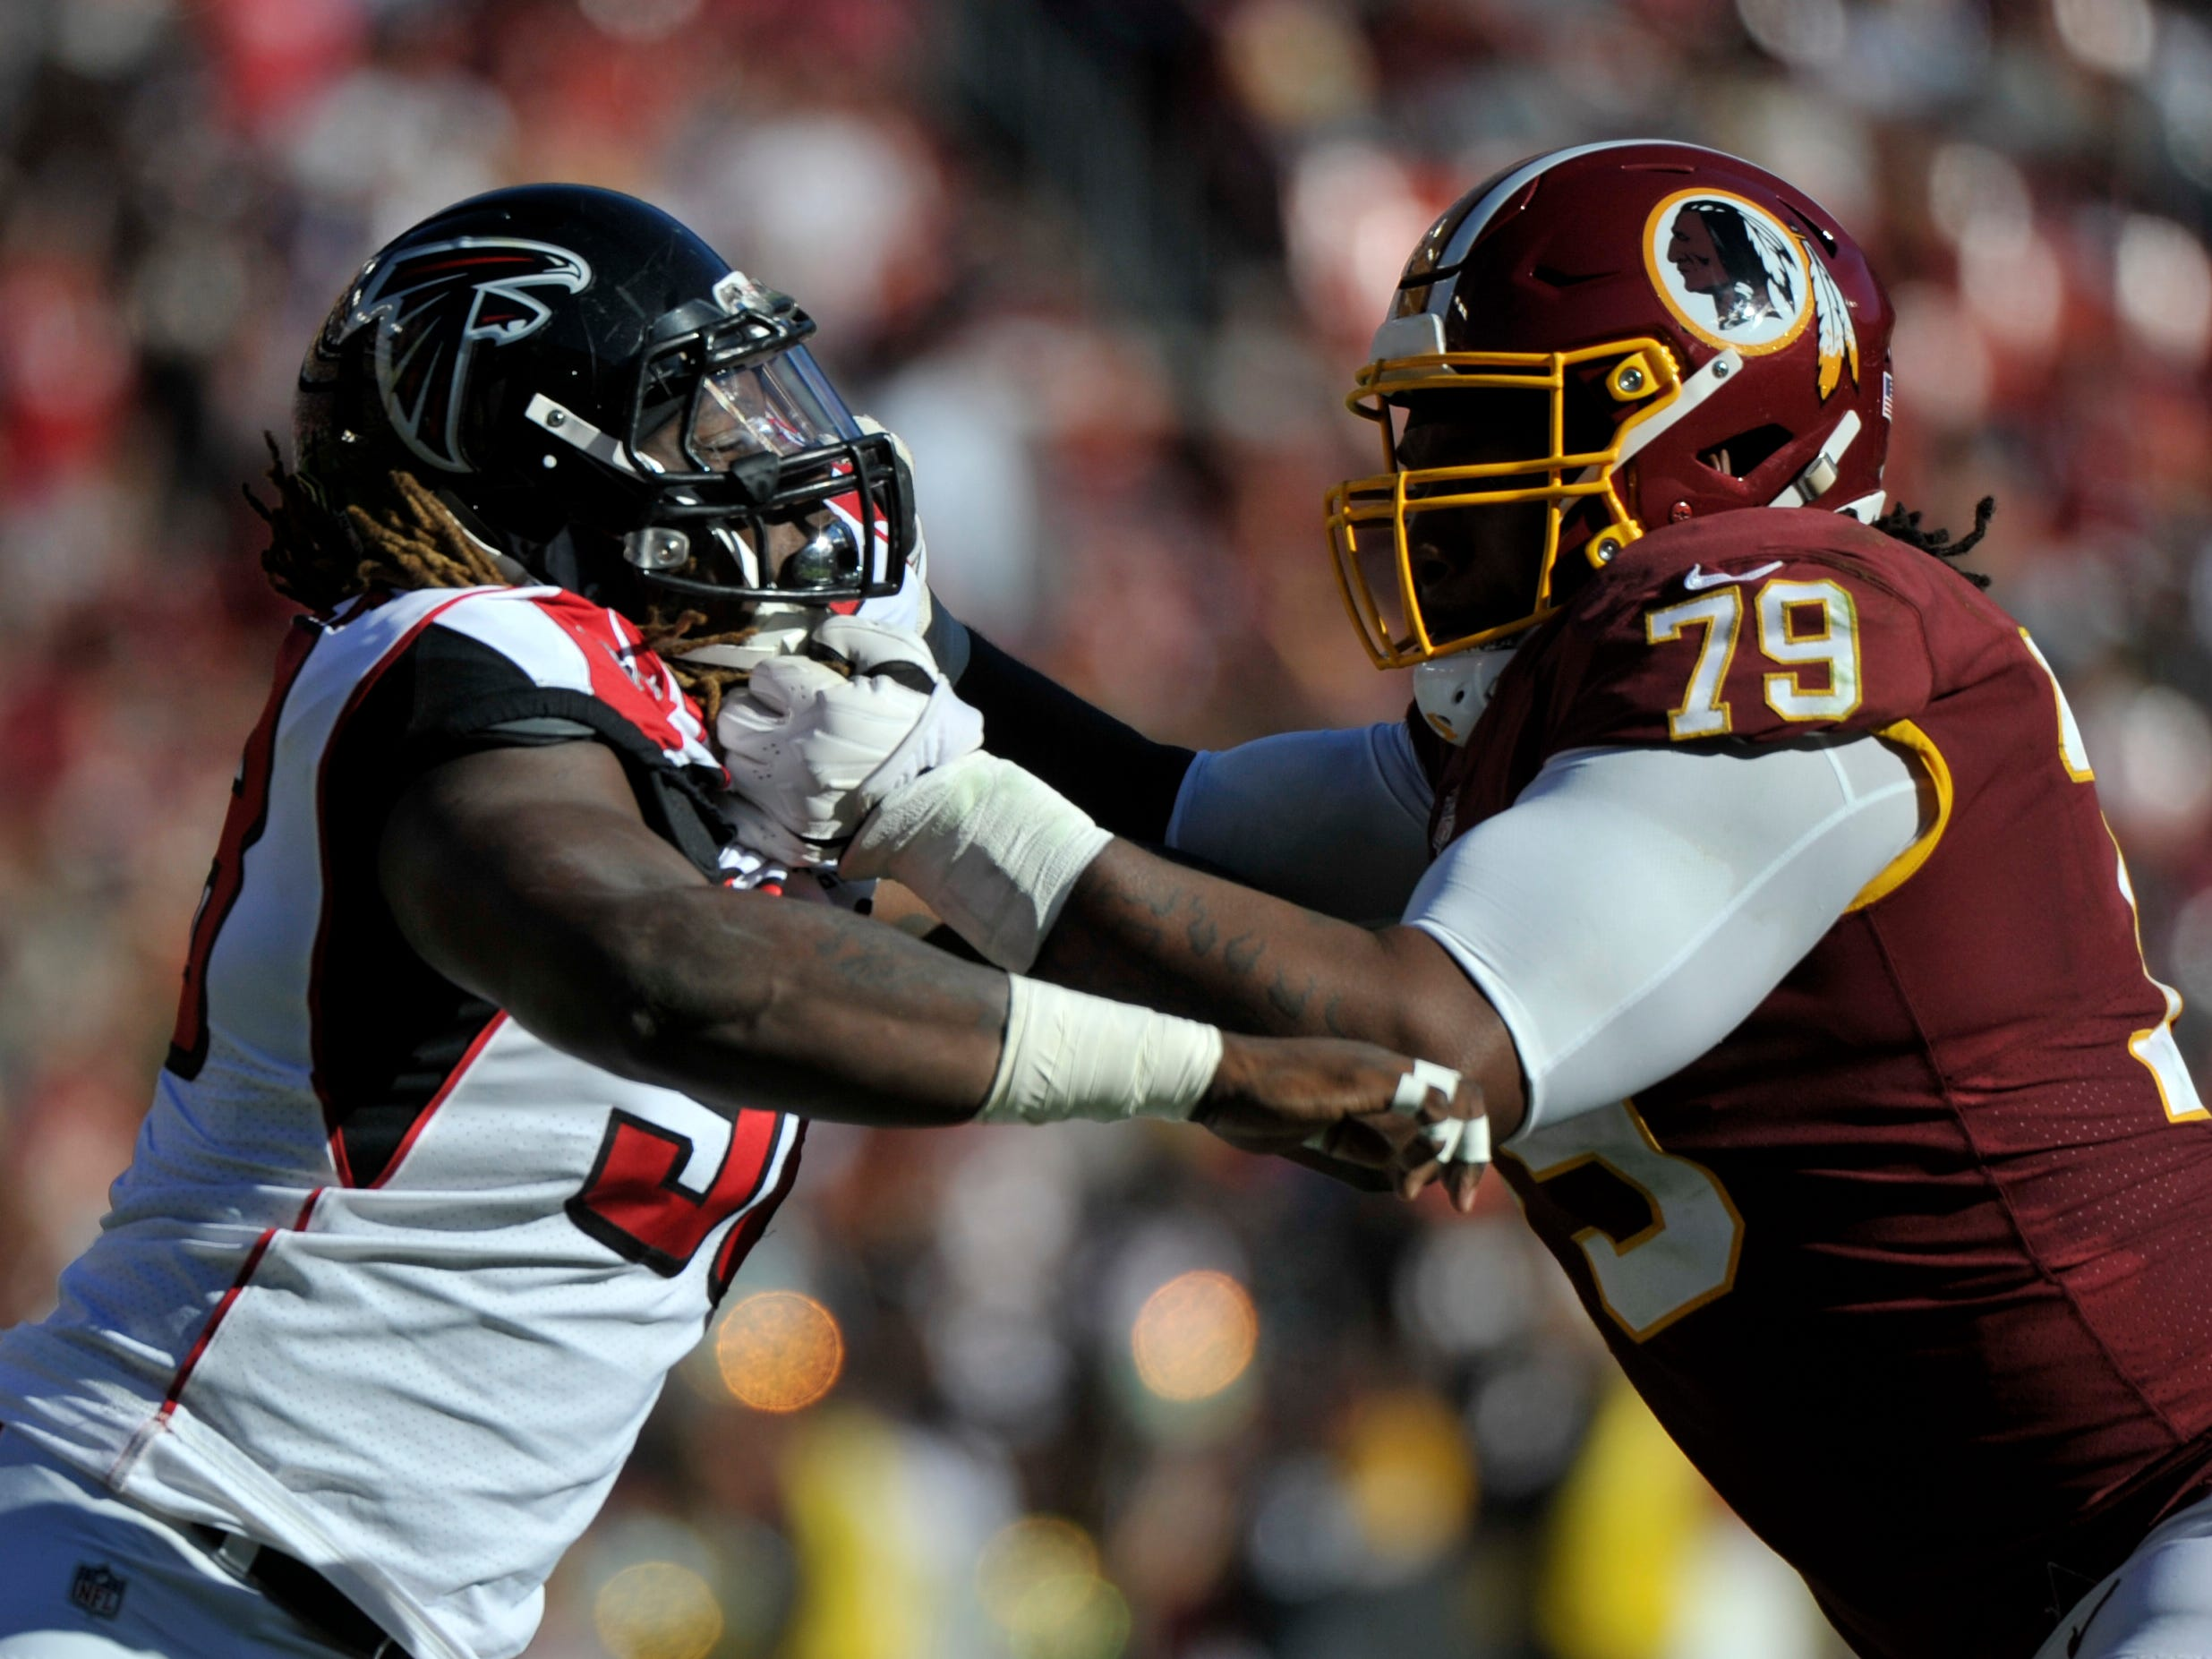 Atlanta Falcons defensive end Takkarist McKinley (left) rushes against Washington Redskins offensive tackle Ty Nsekhe (right) during an NFL football game between the Atlanta Falcons and Washington Redskins, Sunday, Nov. 4, 2018, in Landover, Maryland.